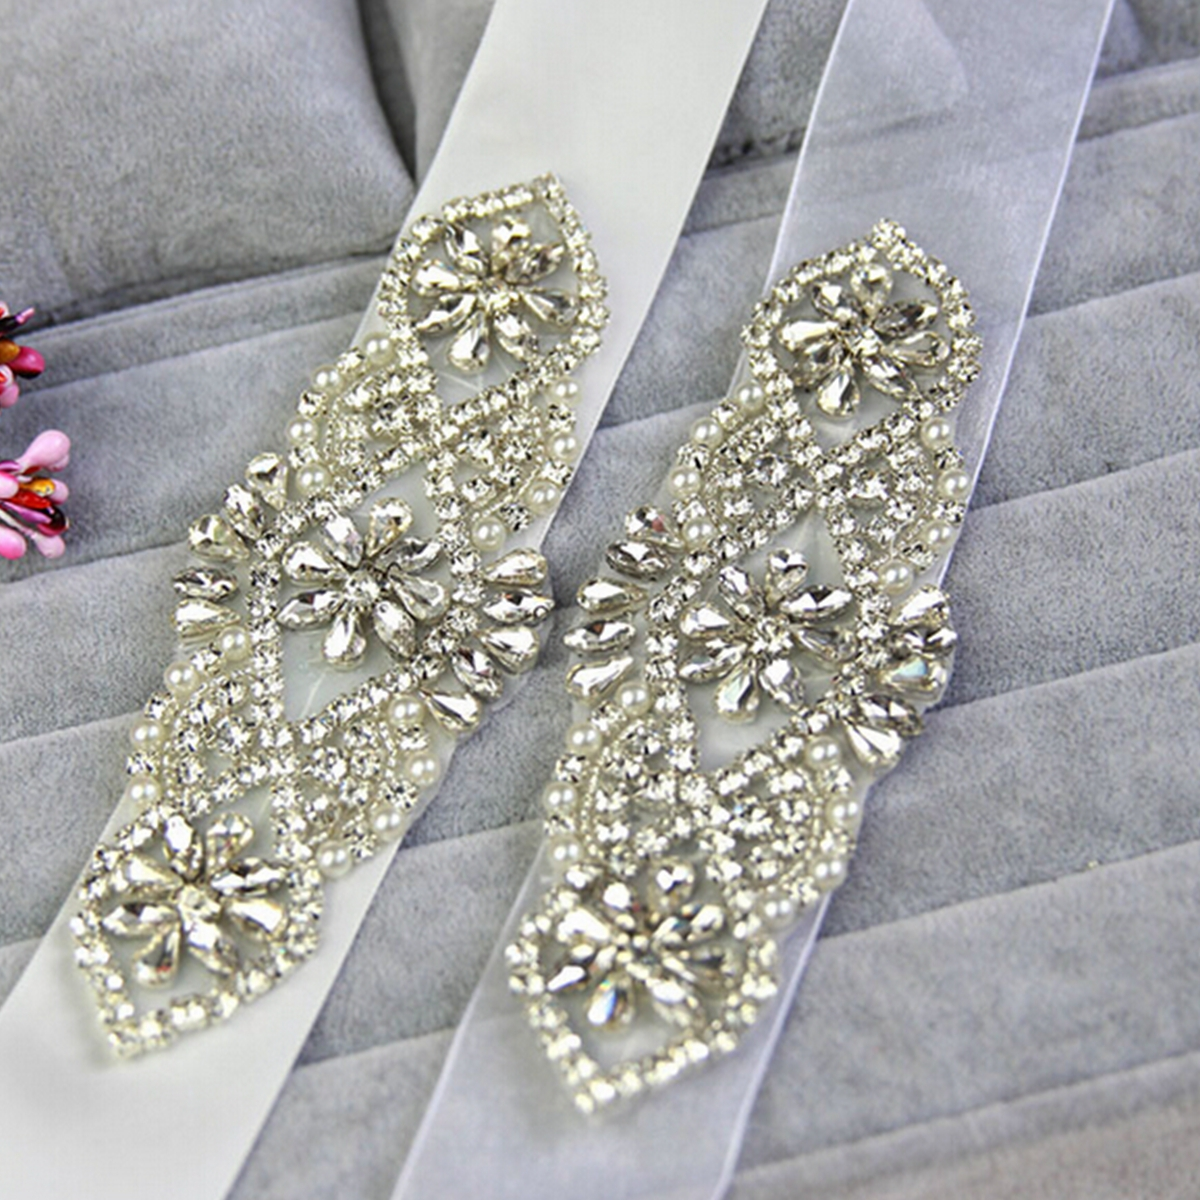 Bridal Vintage Crystal Sash-Rhinestone Yarn Ribbon Wedding Dress Belt